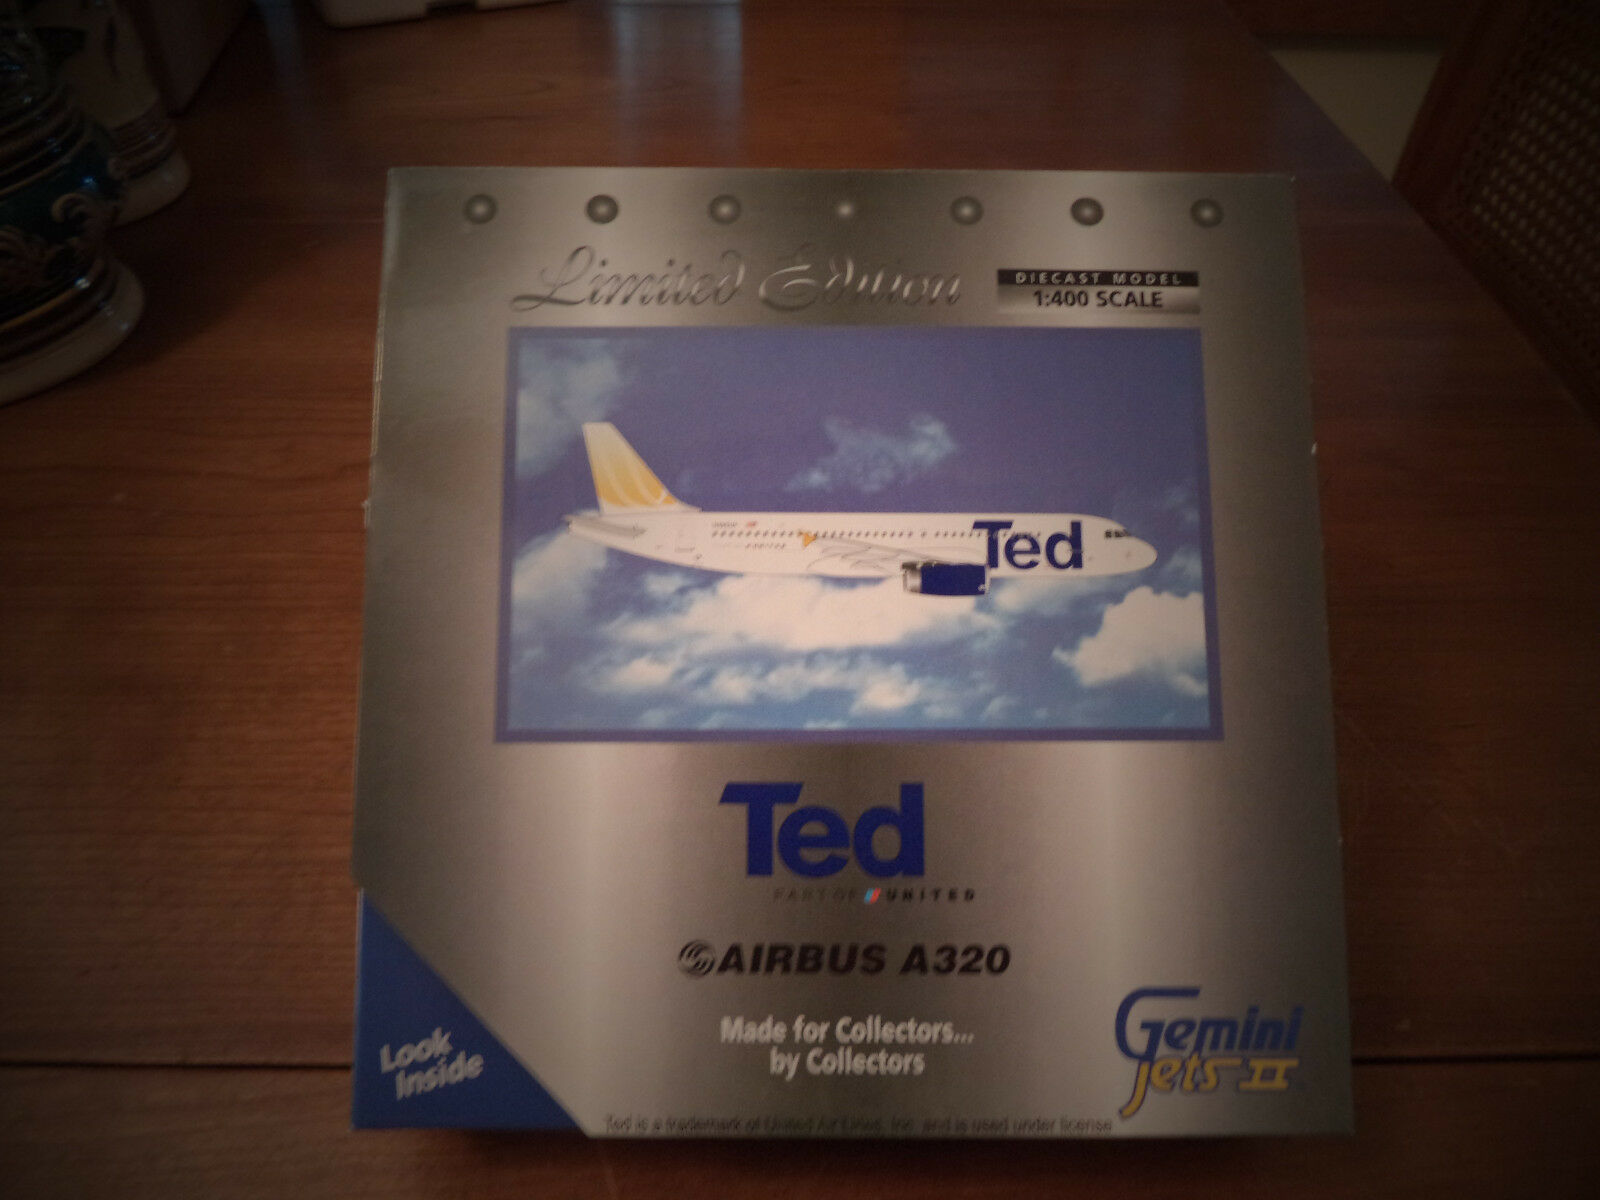 Gemini Jets GJUAL495 TED United Airlines Airbuss A320 400 ScaleFRAM35;N495UA 2004